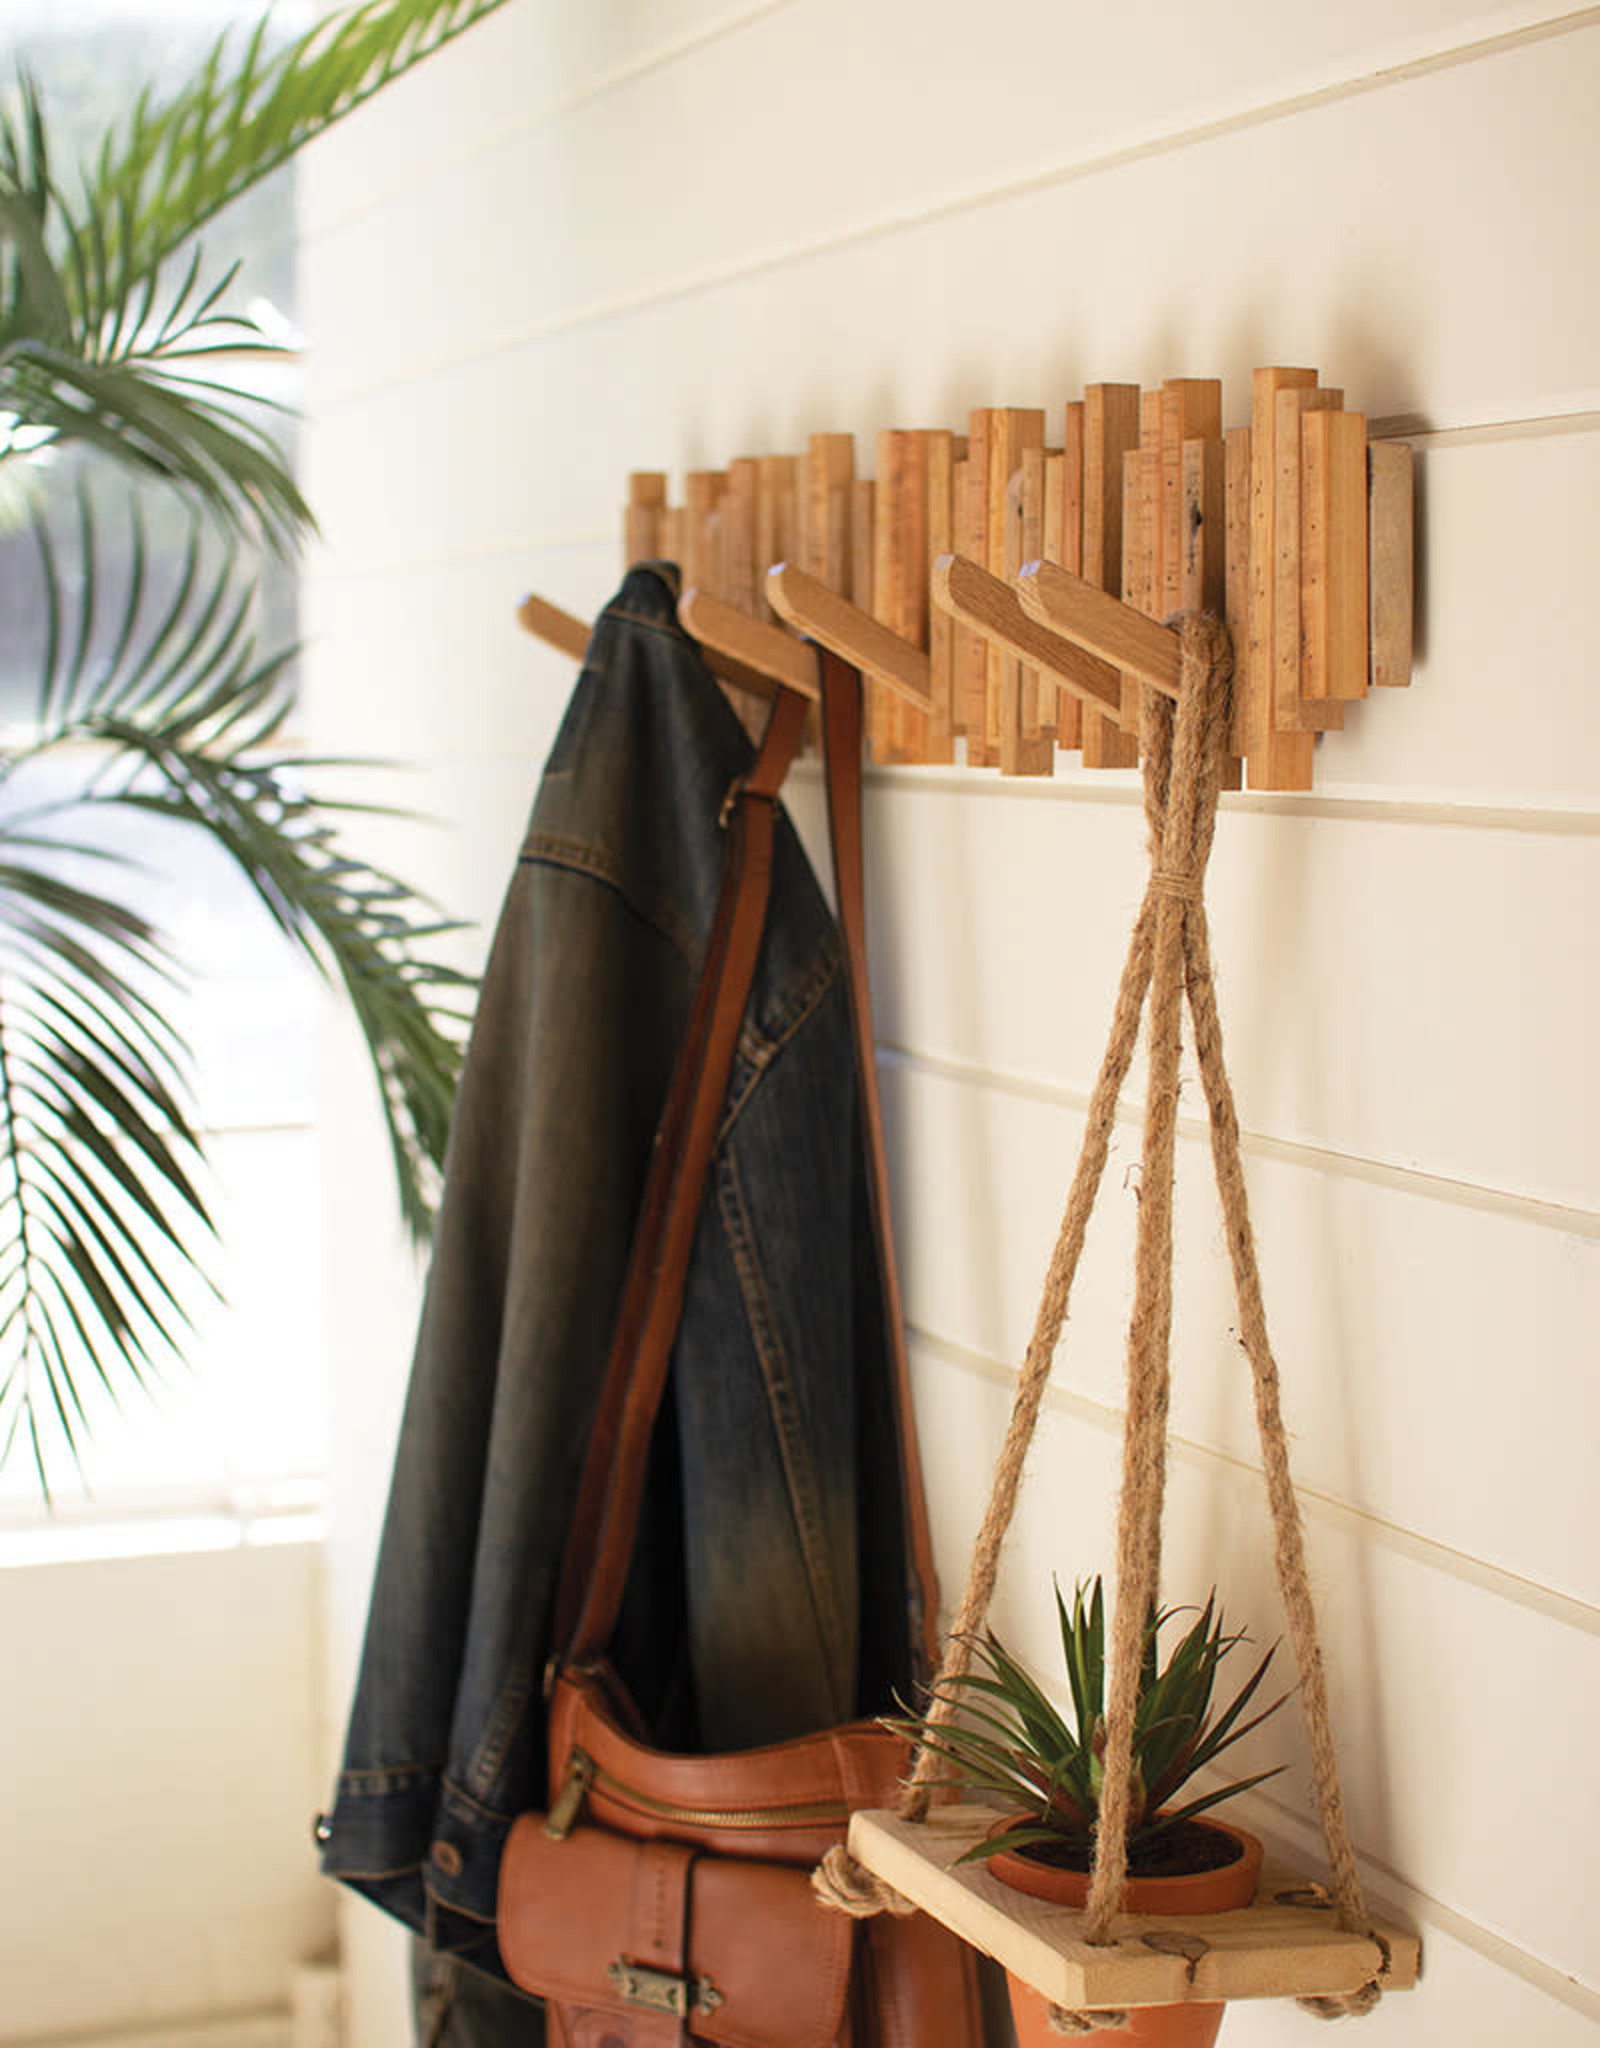 Kalalou Recycled Wood Coat Rack